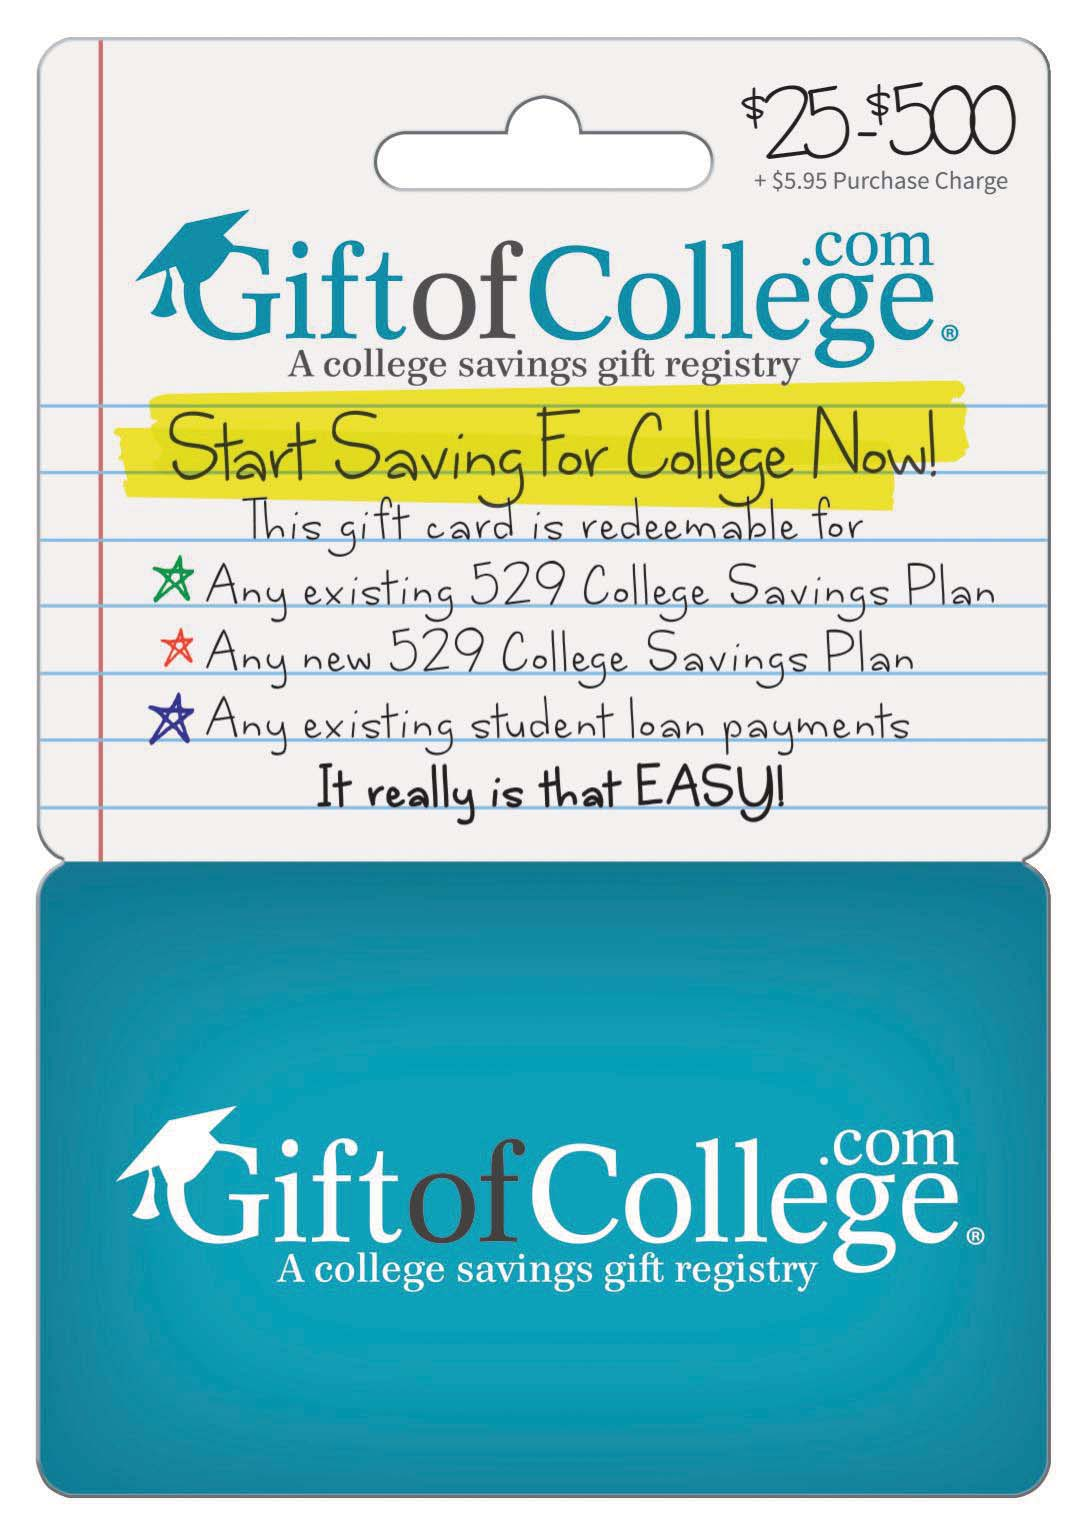 Gift of College card distributed by InComm across the nation